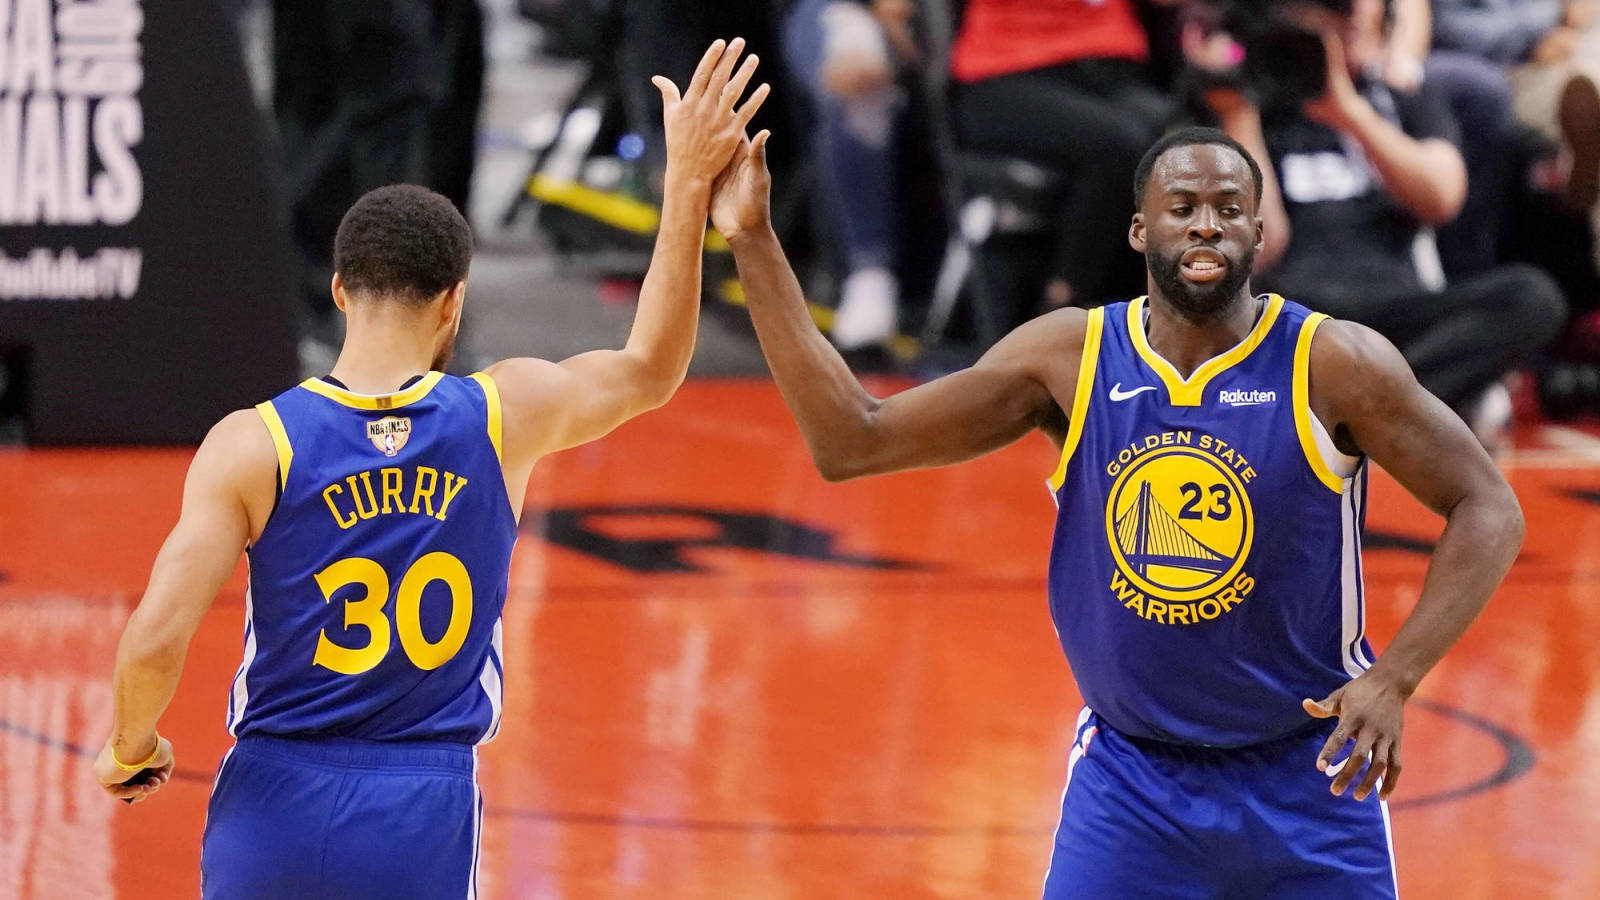 Winning 2019 NBA Finals would be Warriors' most impressive title ever